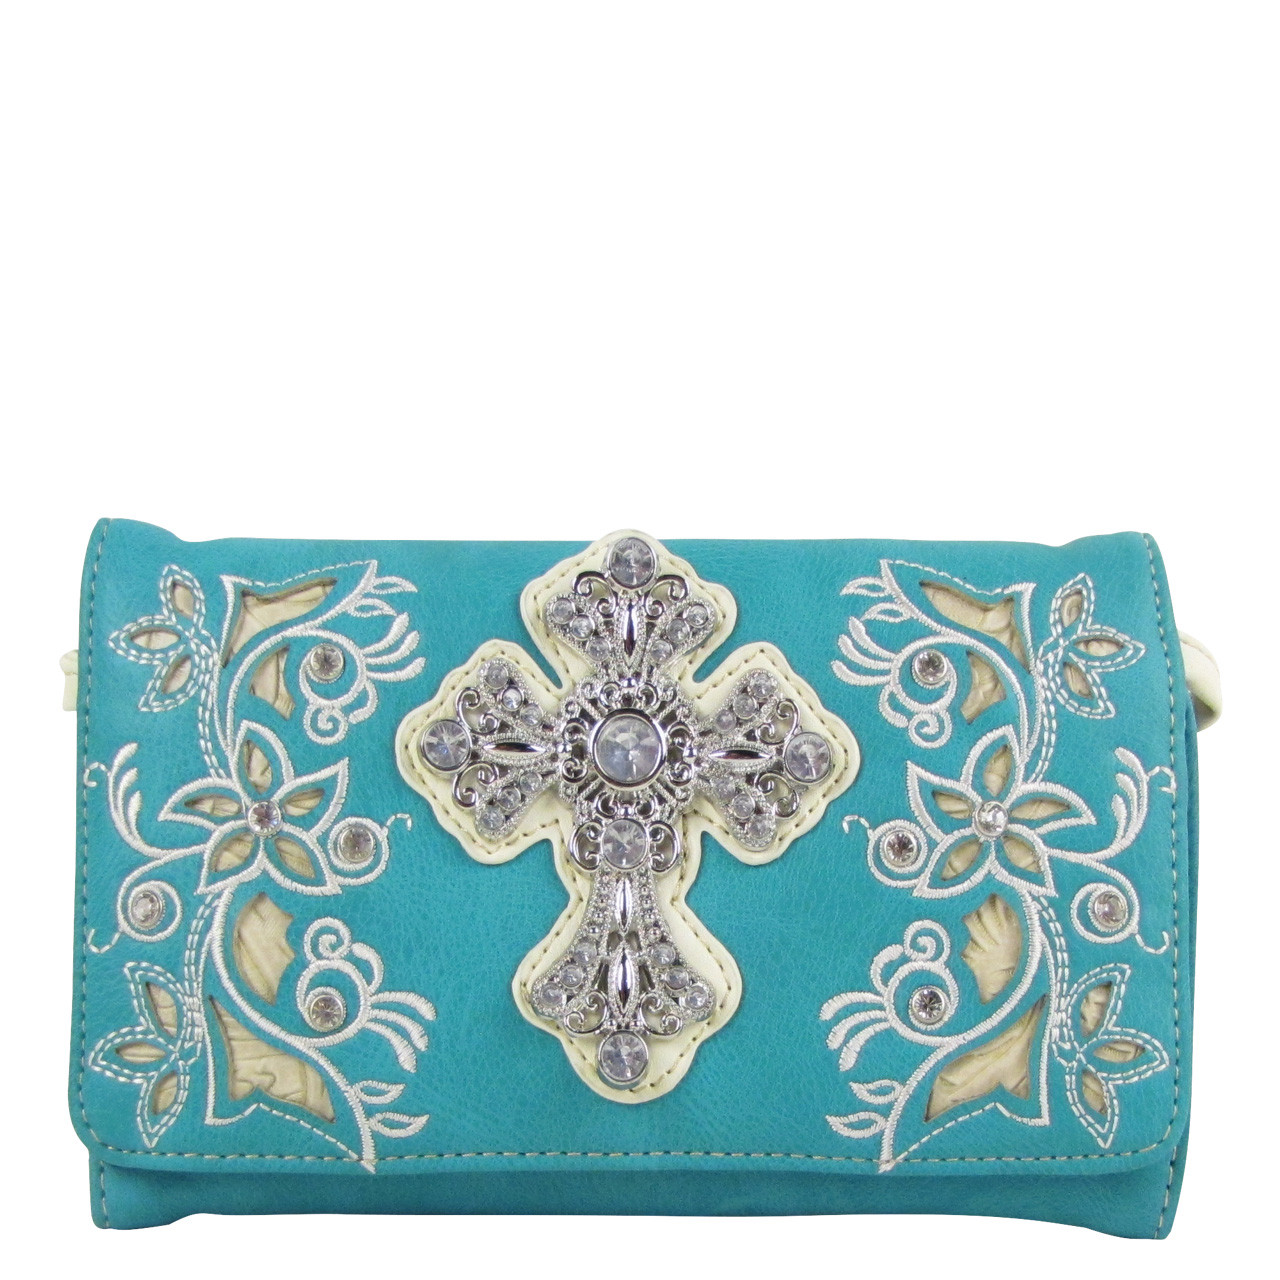 TURQUOISE RHINESTONE FLOWER CROSS LOOK CLUTCH TRIFOLD WALLET CW1-0471TRQ